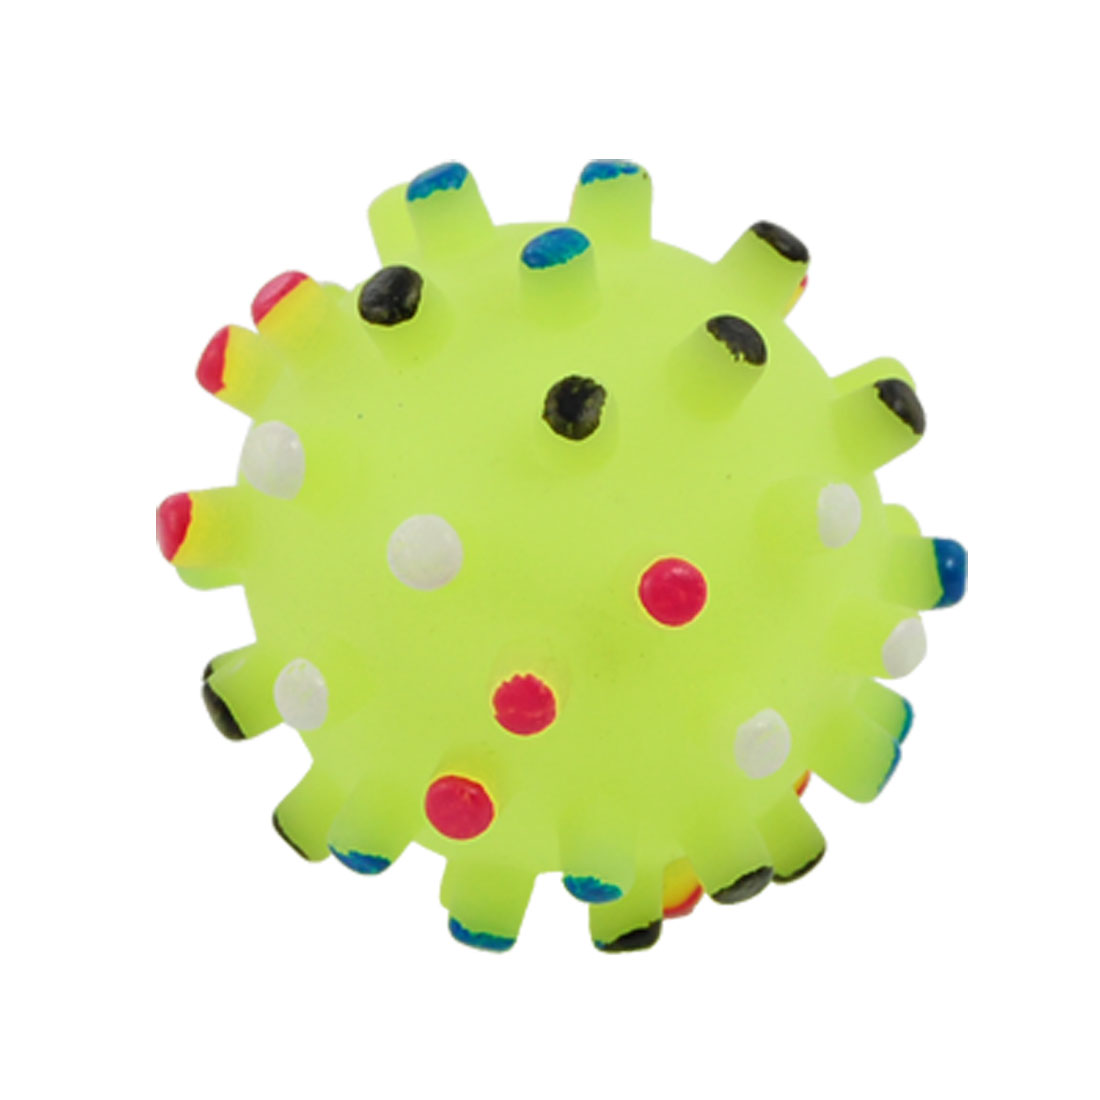 Yellowgreen Ball Shaped Squeeze Squeaky Chew Toy for Pet Dog